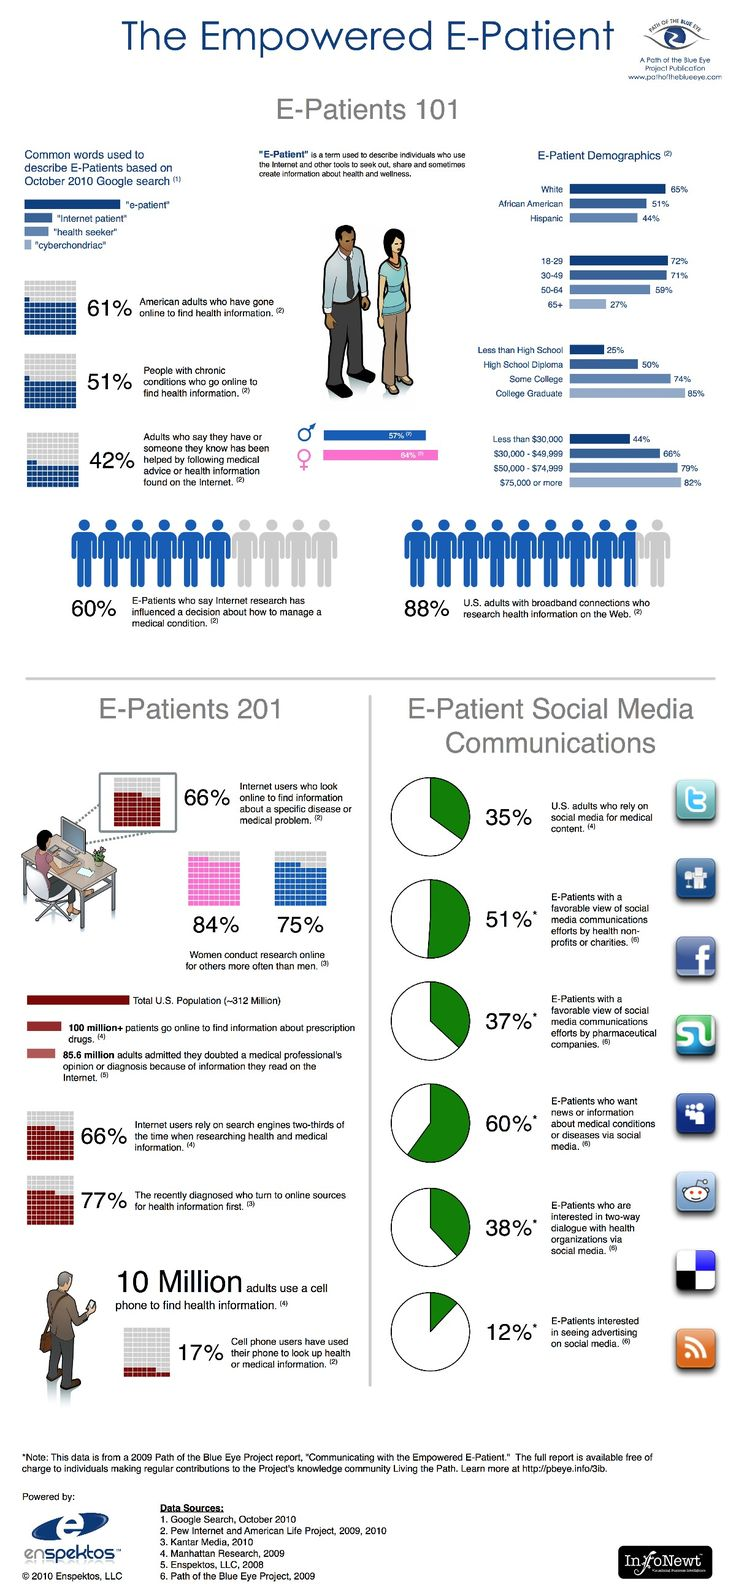 The e-Patient of today.  Will you be one if not already? #epatient #ehr #healthit